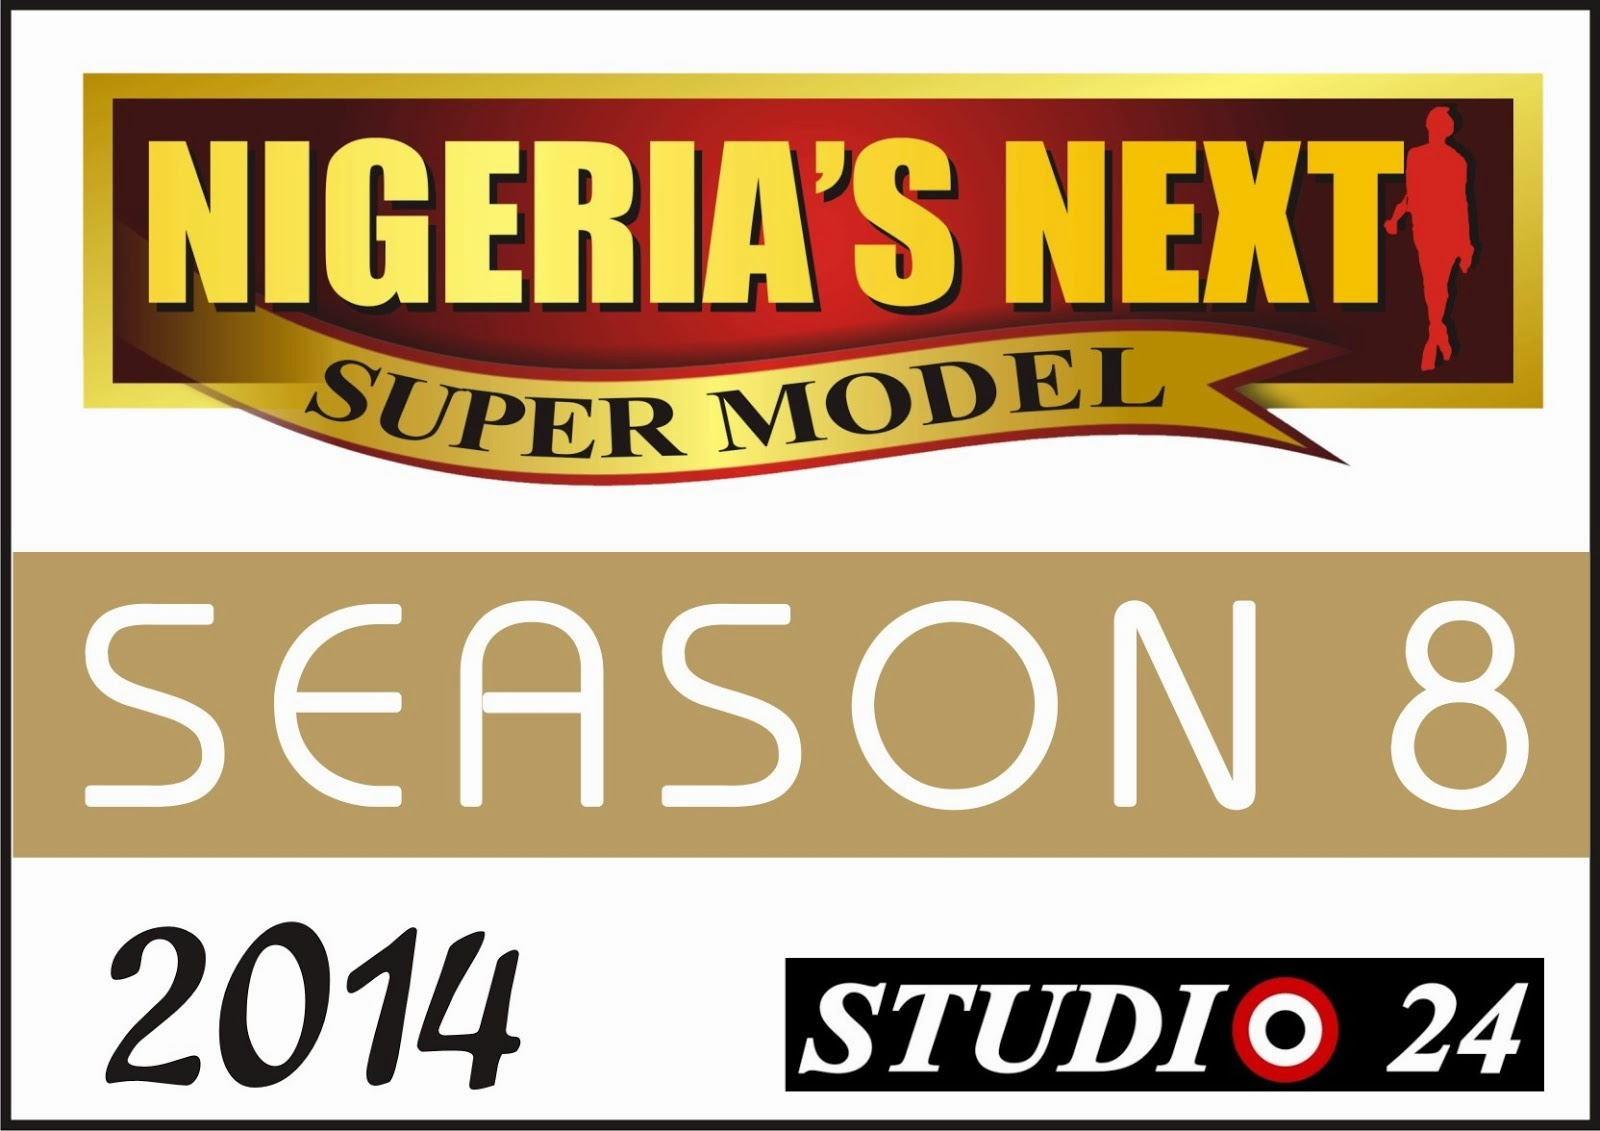 NIGERIA'S NEXT SUPER MODEL SEASON 8